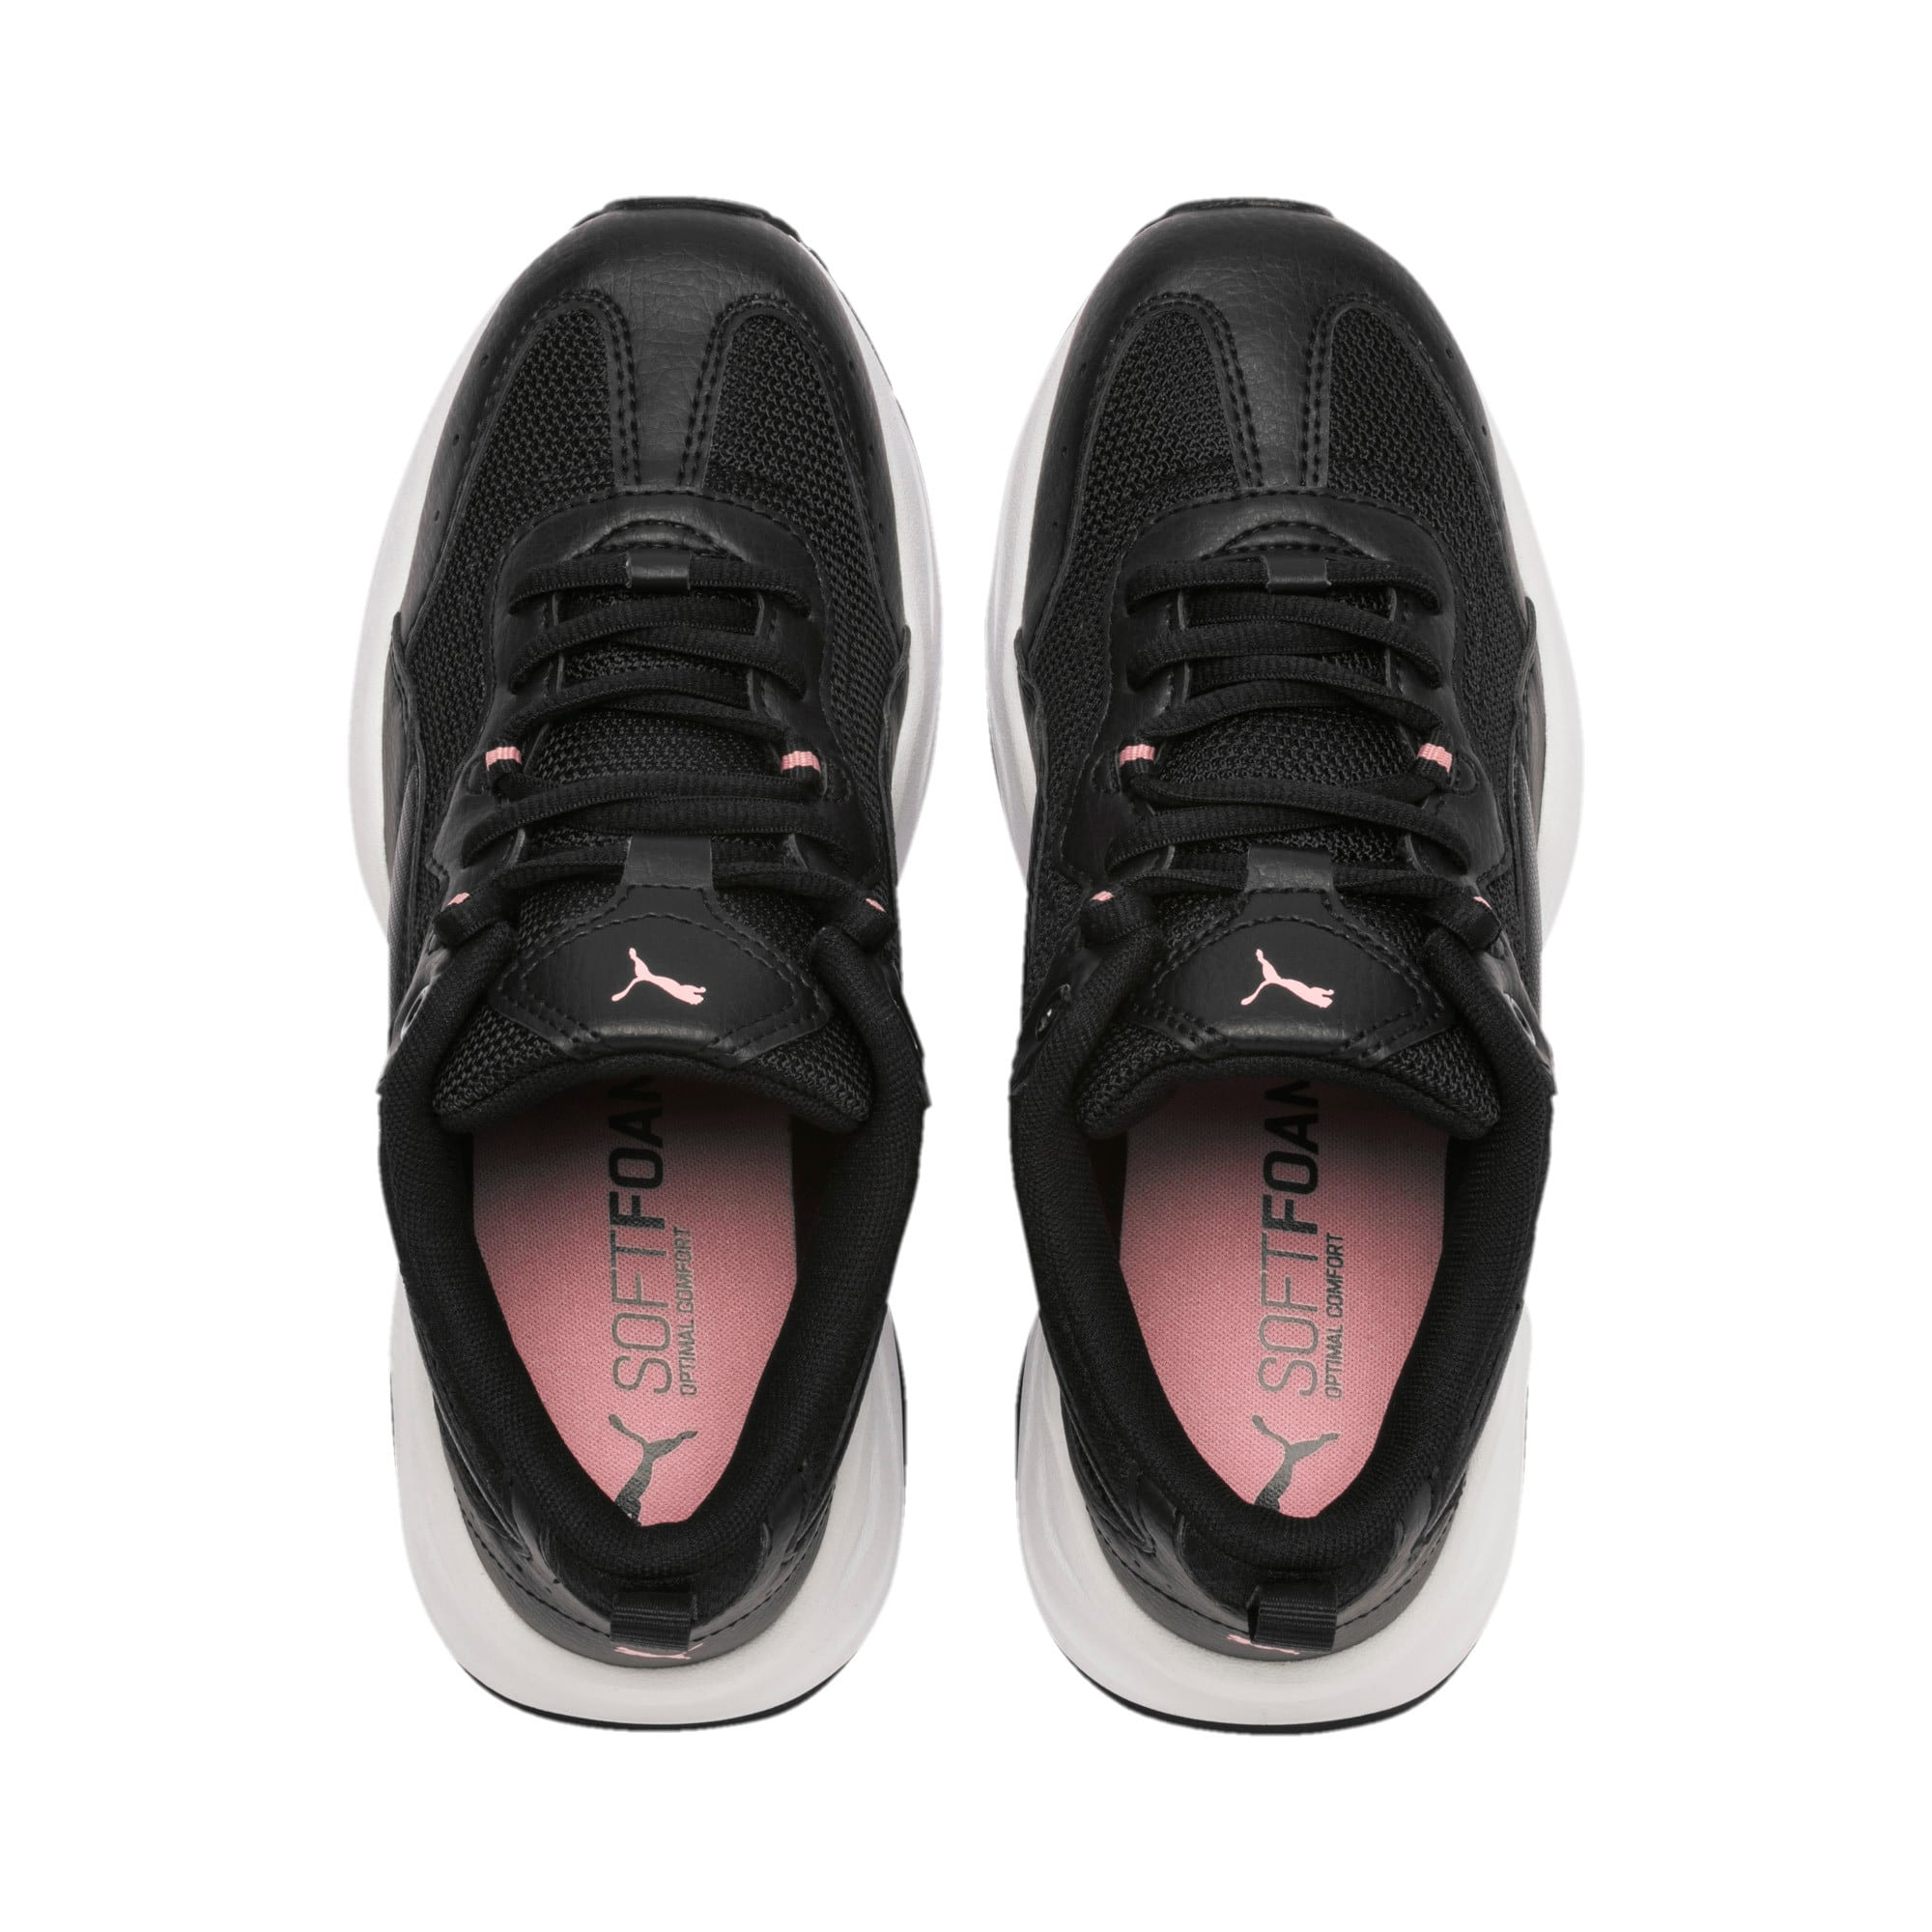 Thumbnail 6 of Cilia Youth Trainers, Black-Silver-Bridal Rose, medium-IND